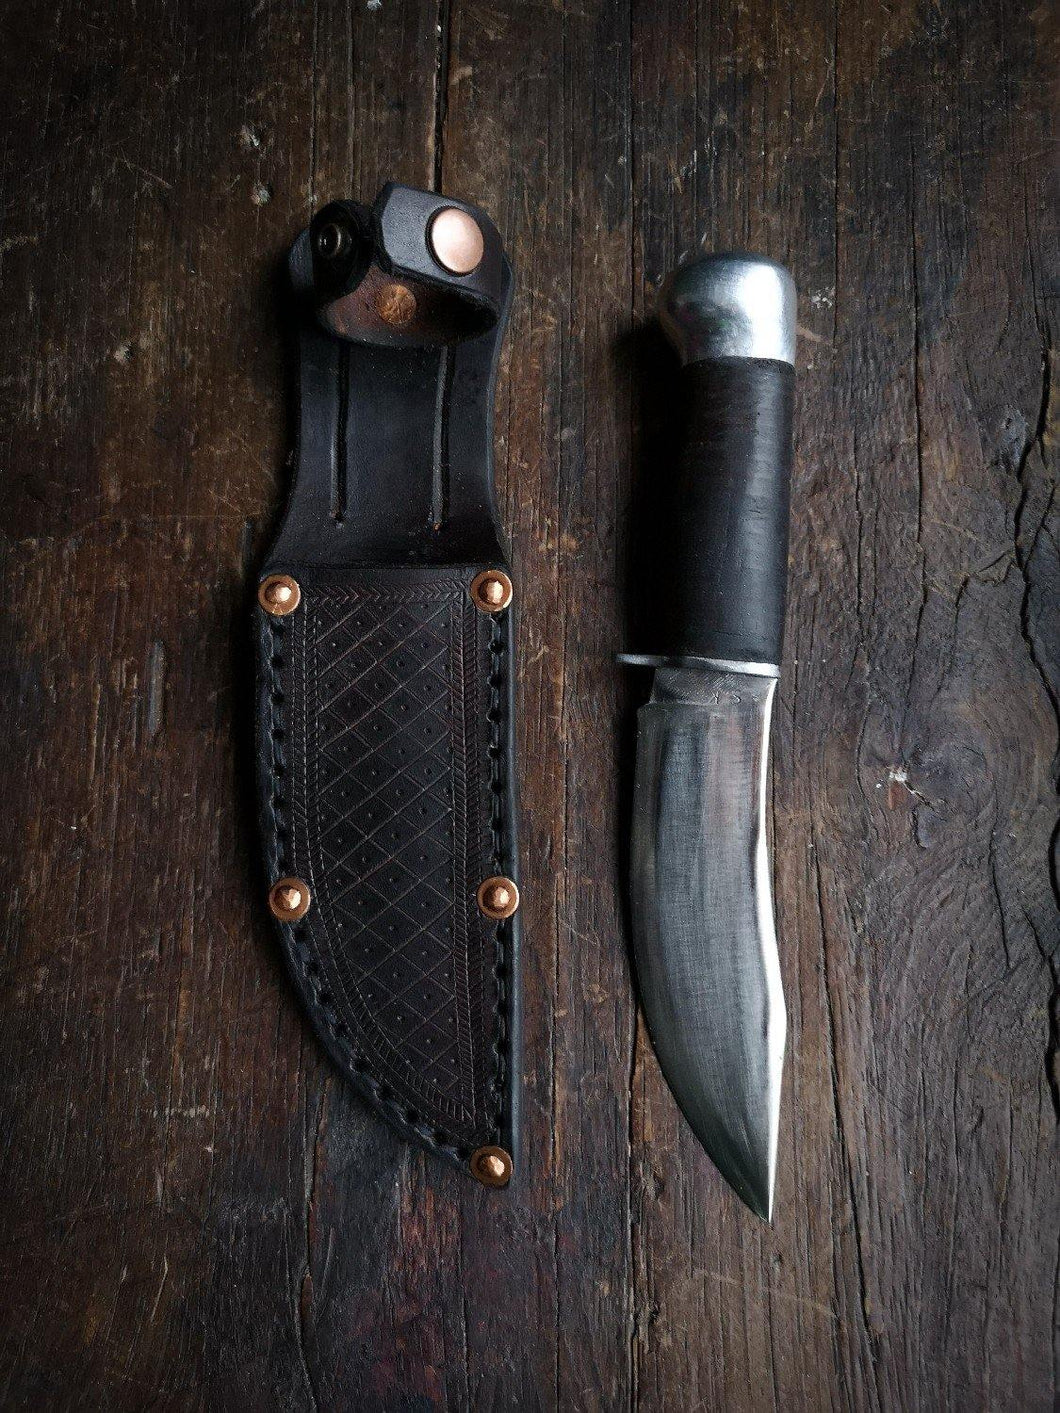 Marbles Woodcraft Knife - Handforged